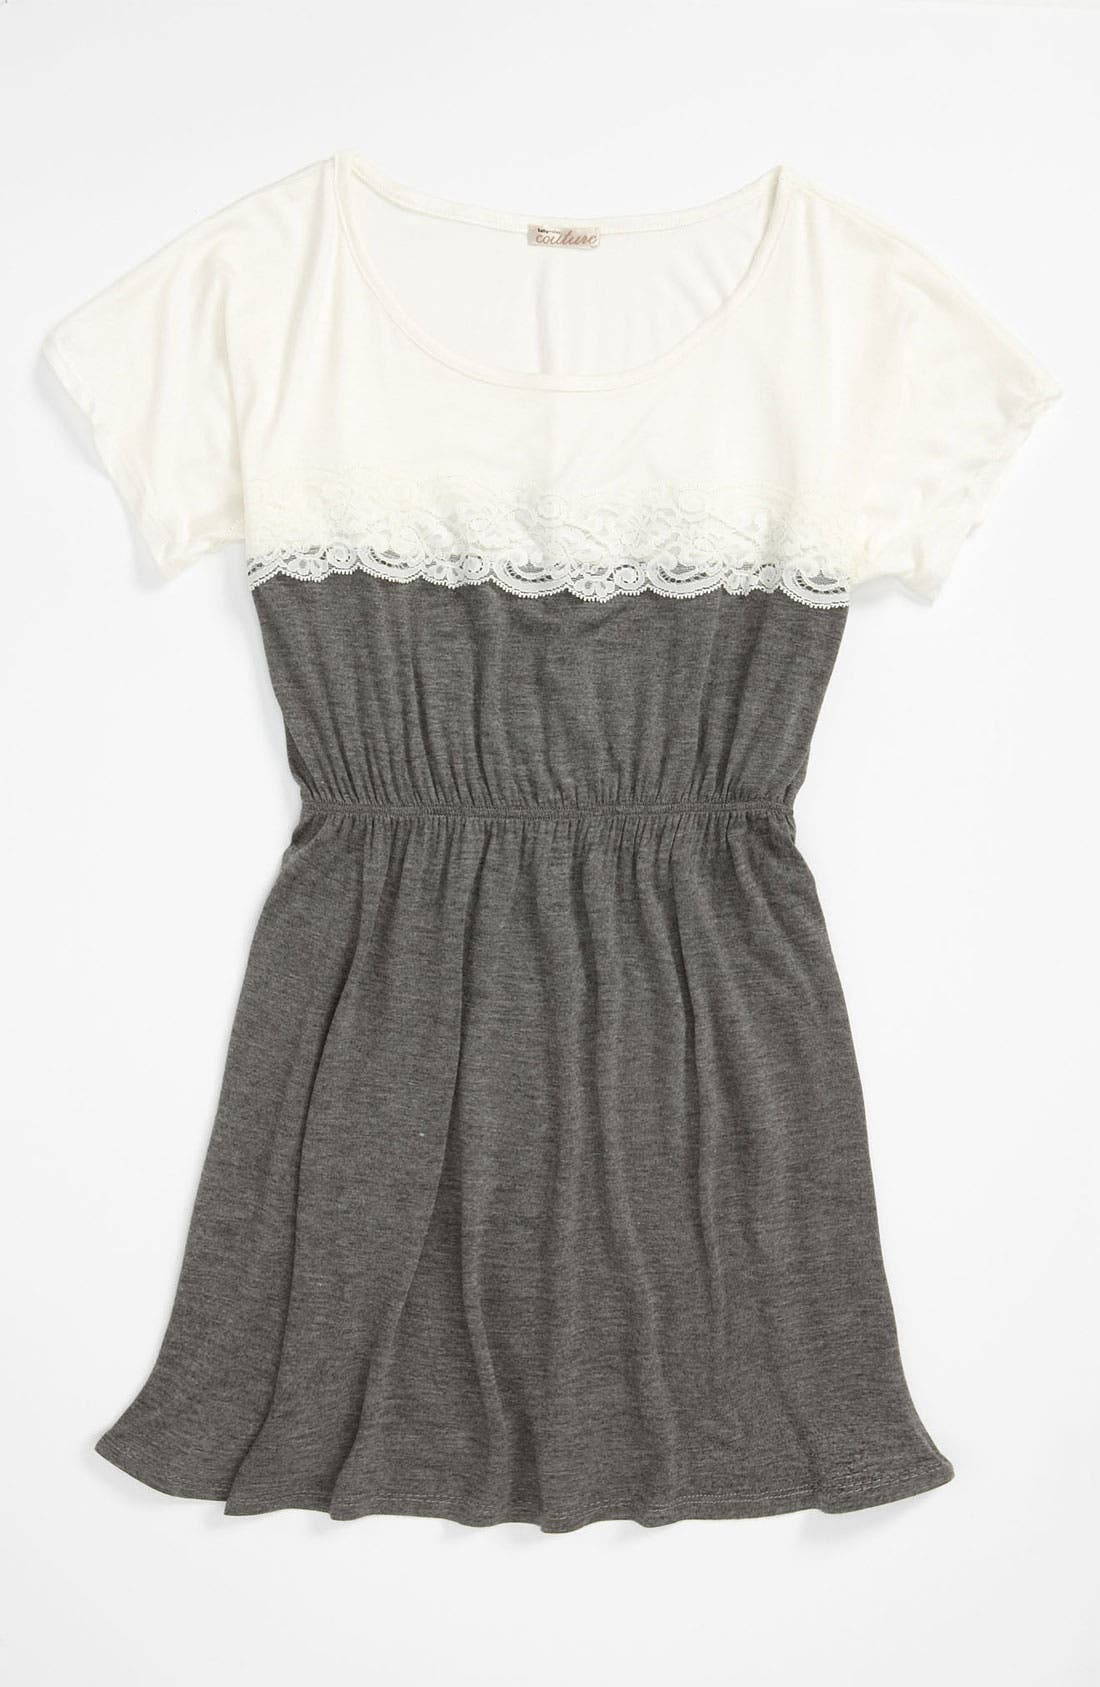 Alternate Image 1 Selected - Sally Miller Colorblock Lace Dress (Big Girls)